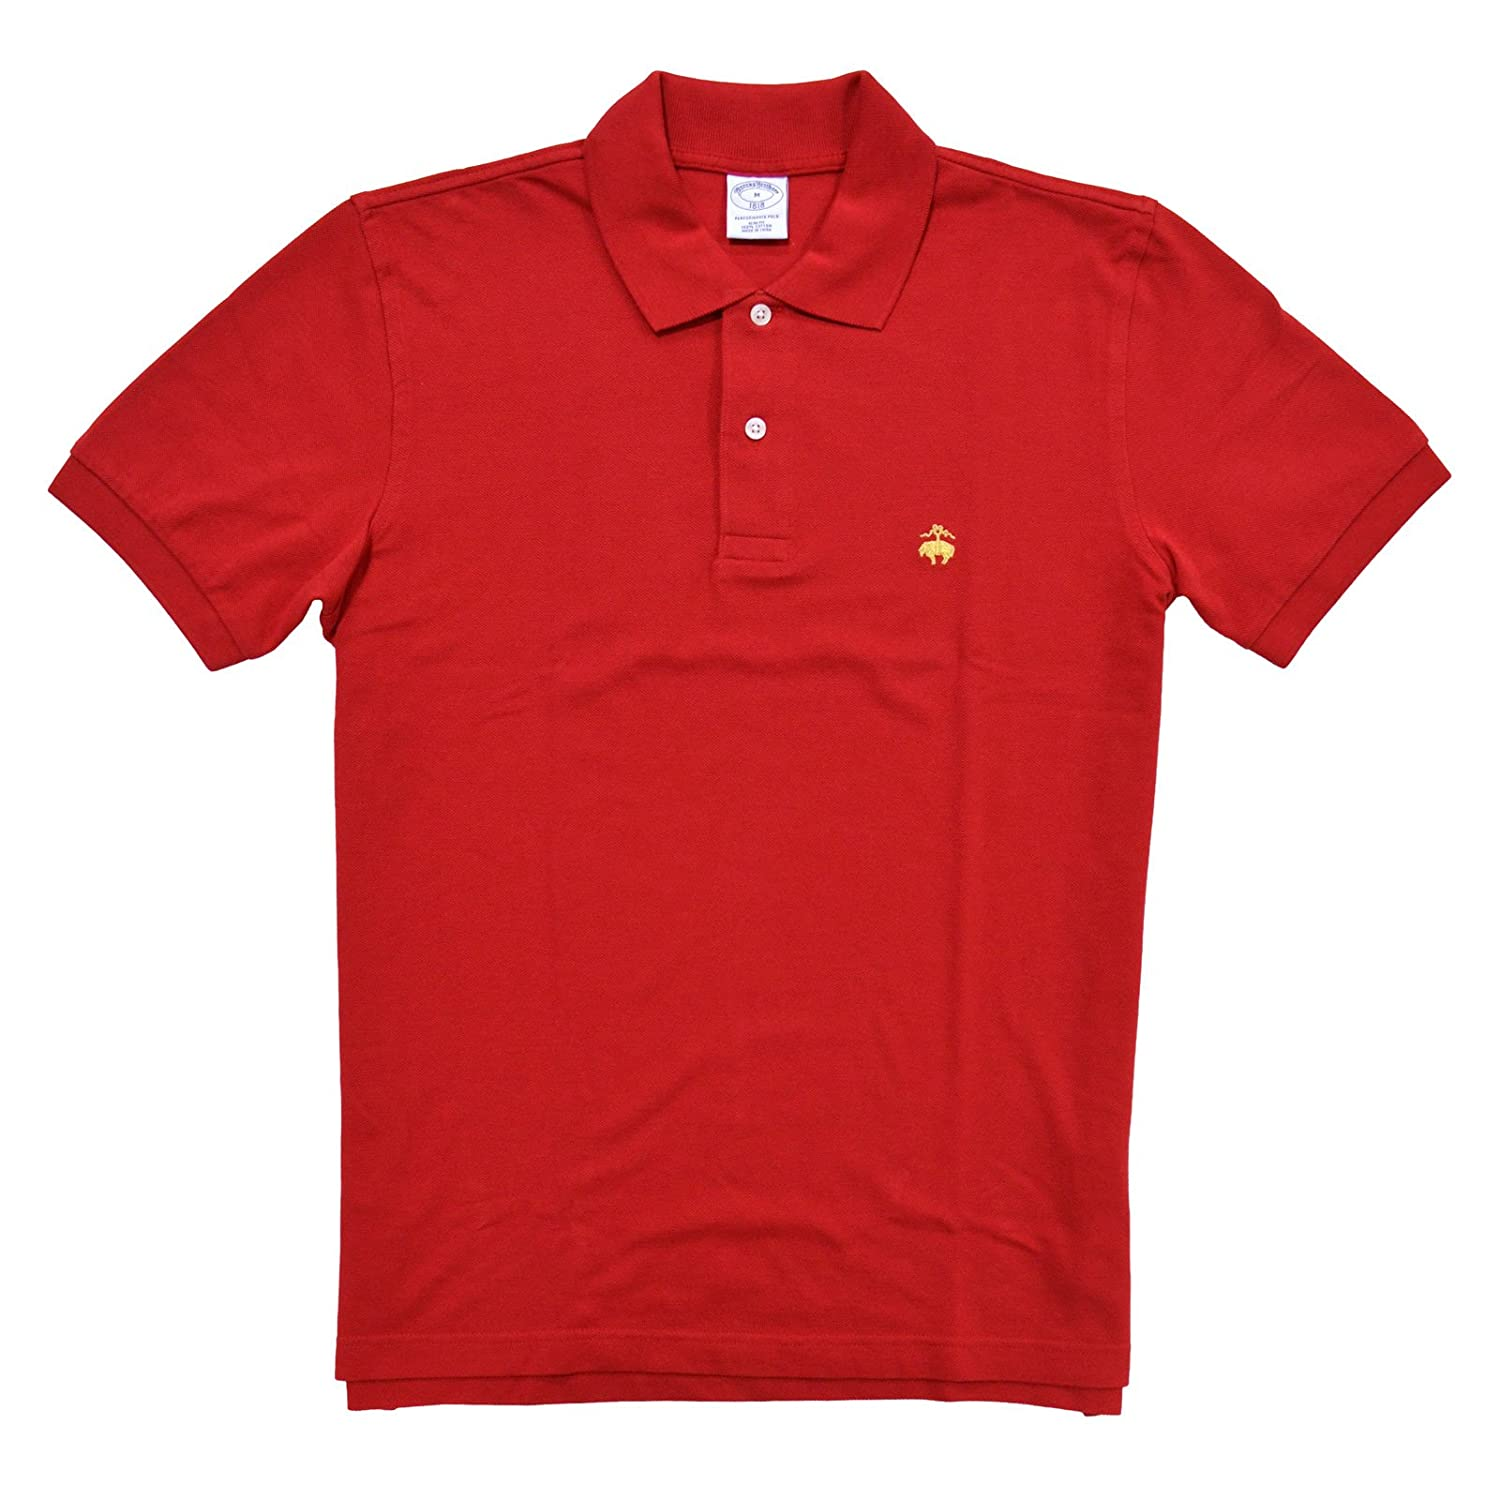 06f2f6815 Brooks Brothers Golden Fleece Slim Fit Performance Polo Shirt at Amazon  Men s Clothing store